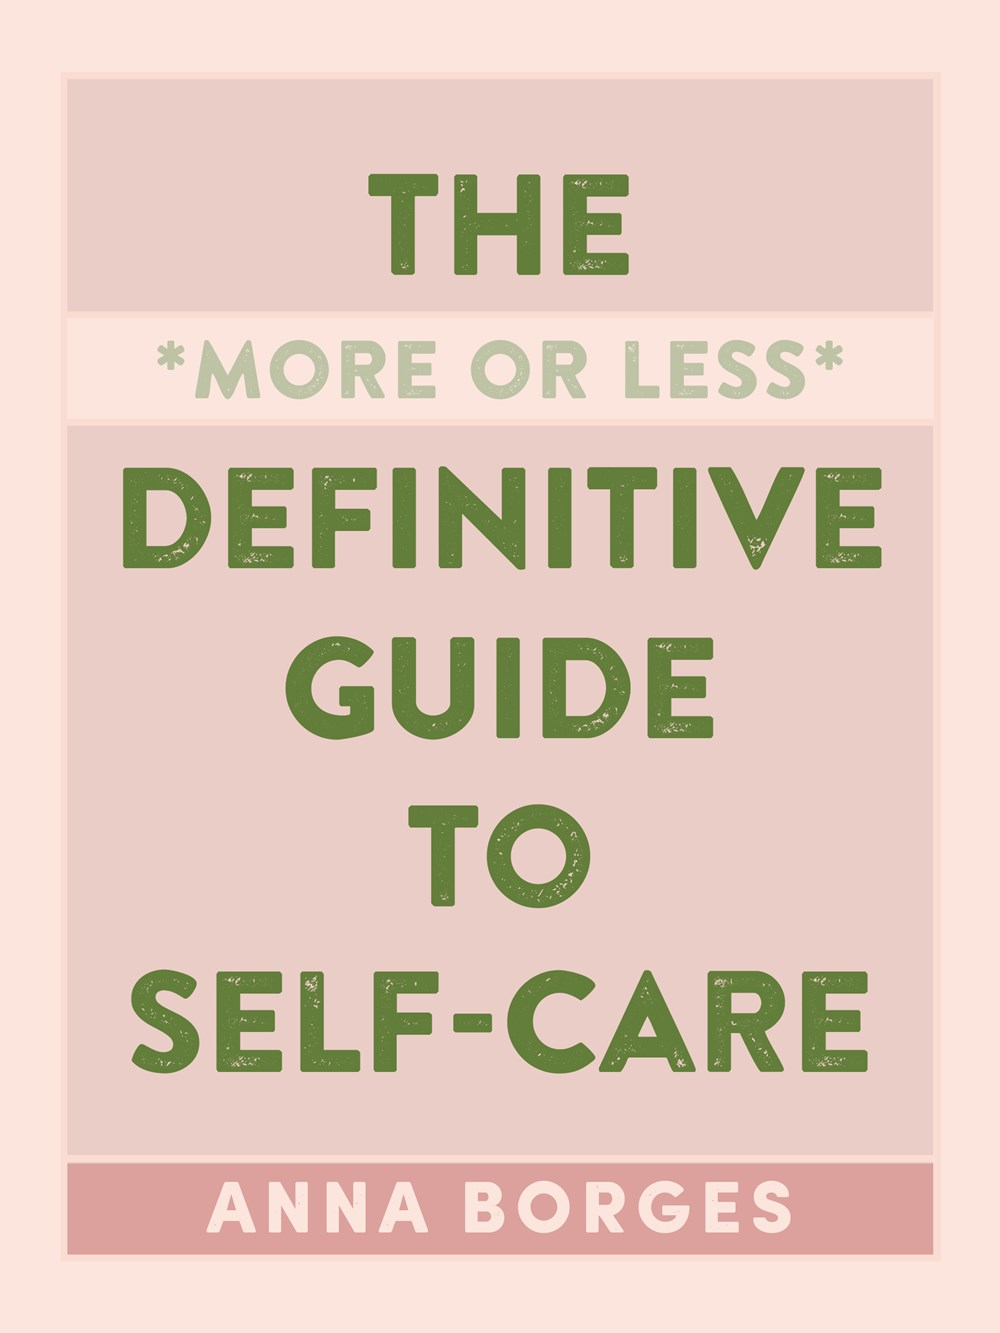 """The More or Less Definitive Guide to Self-CareAnna Borges - The go-to guide for self-care—an A to Z, mental health–centric handbook from asking for help to catching some zzz's.Formerly at BuzzFeed, Borges helped popularize the self-care movement in the first place, and her book distills the """"self-care internet"""" into an A to Z list with over 200 entries—from soul-searching prompts to simple pick-me-ups. Readers can tailor their own routines by choosing among Borges's strategies, which cover four distinctive realms of self-care: physical, mental, social, and spiritual.Read more here »"""